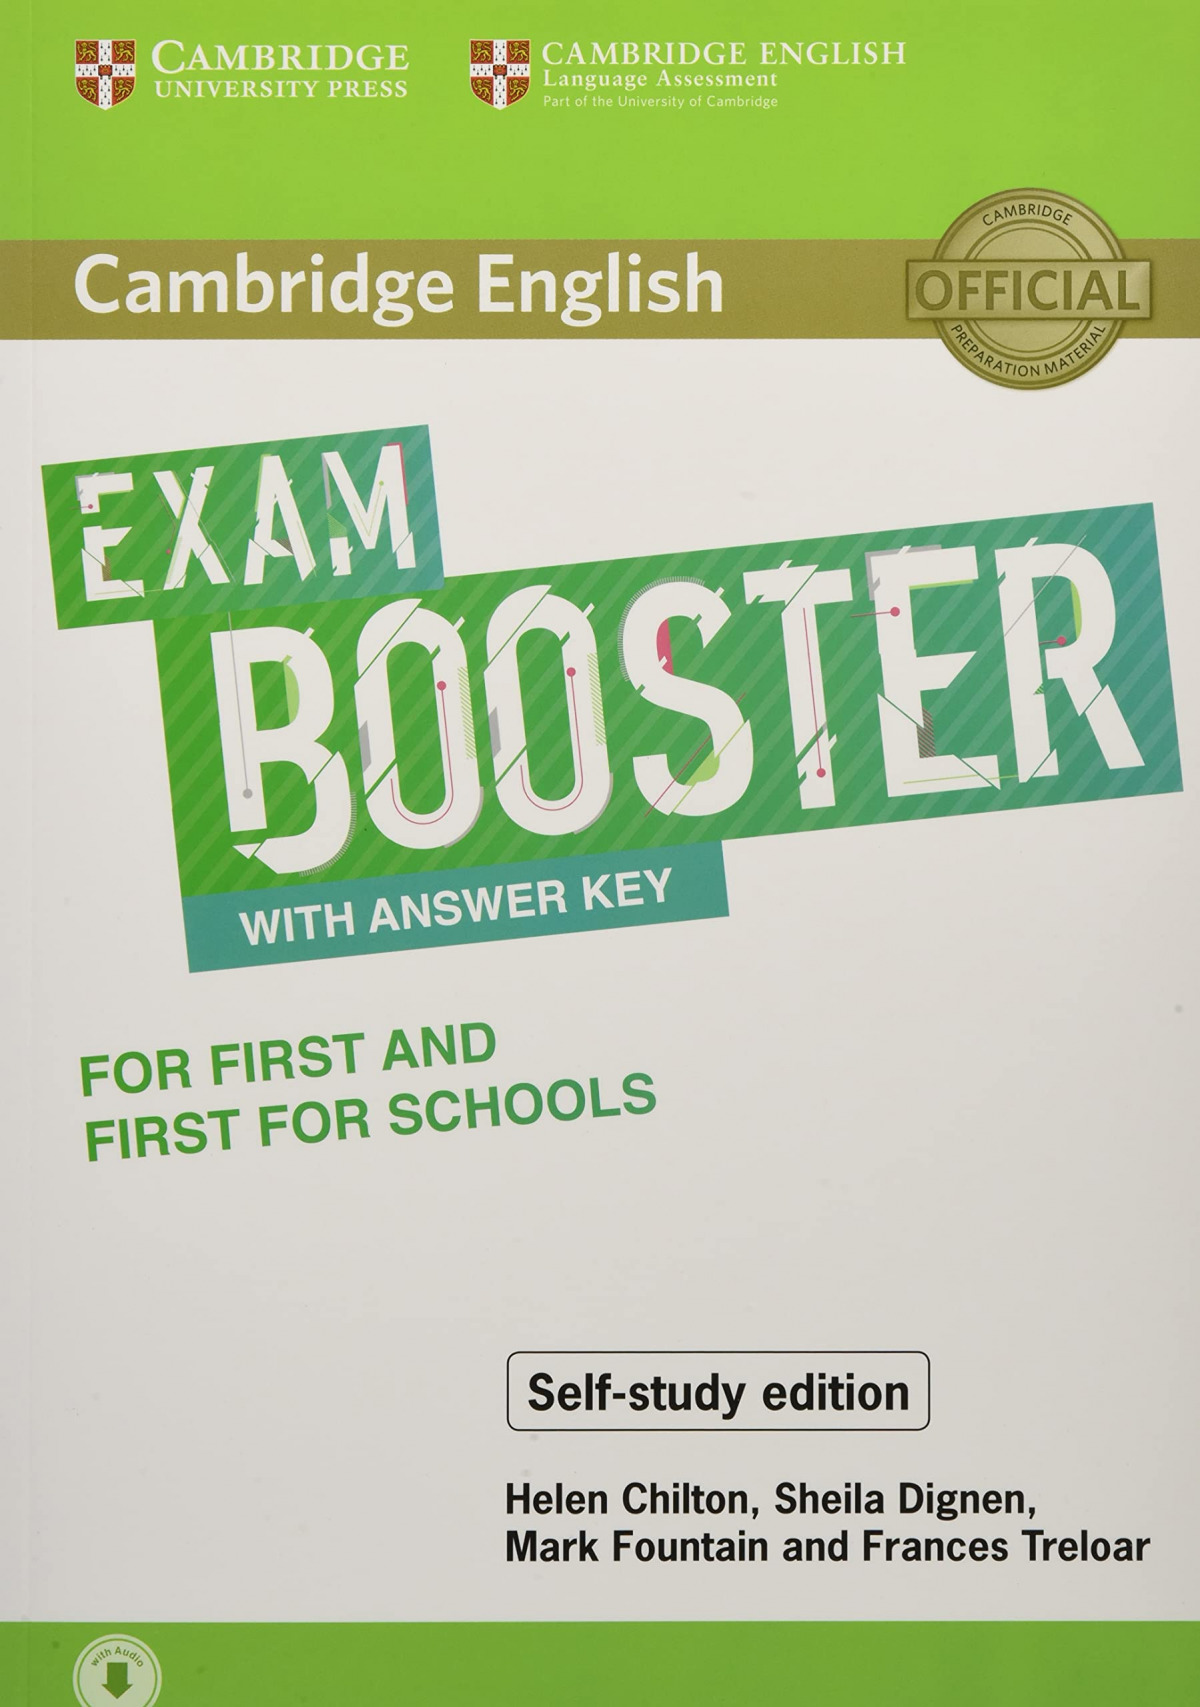 (17).EXAM BOOSTER (+ANSWER KEY) FOR FIRST AND FIRST SCHOOLS